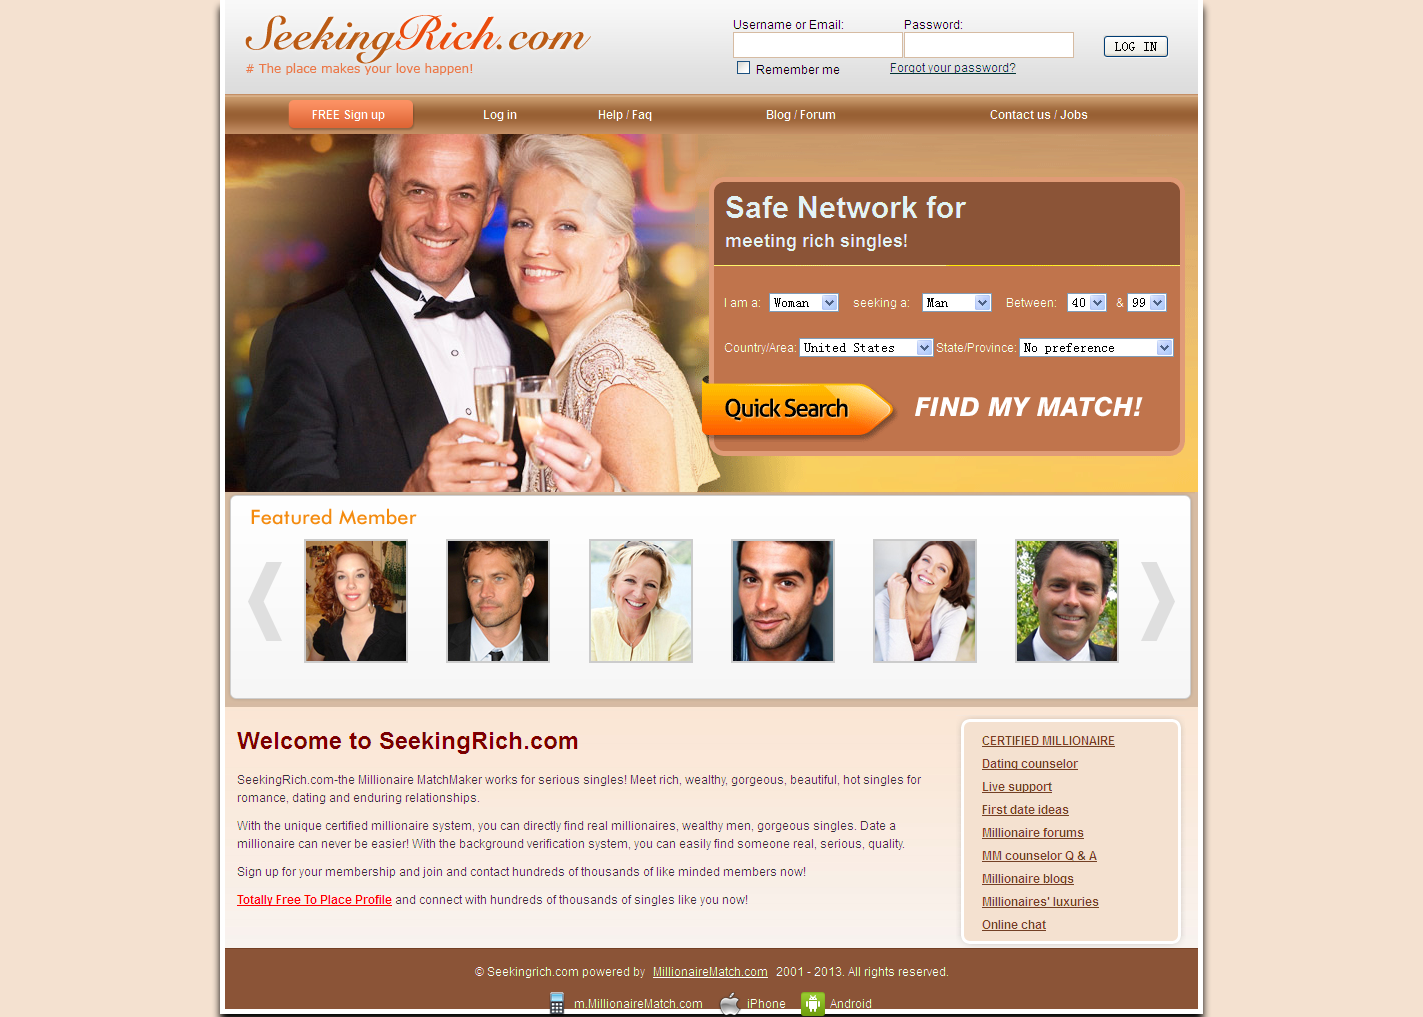 nashotah singles dating site Meet wisconsin singles that you connect w/ on our dating site for happier &  long lasting relationships register for free to see compatible local singles.